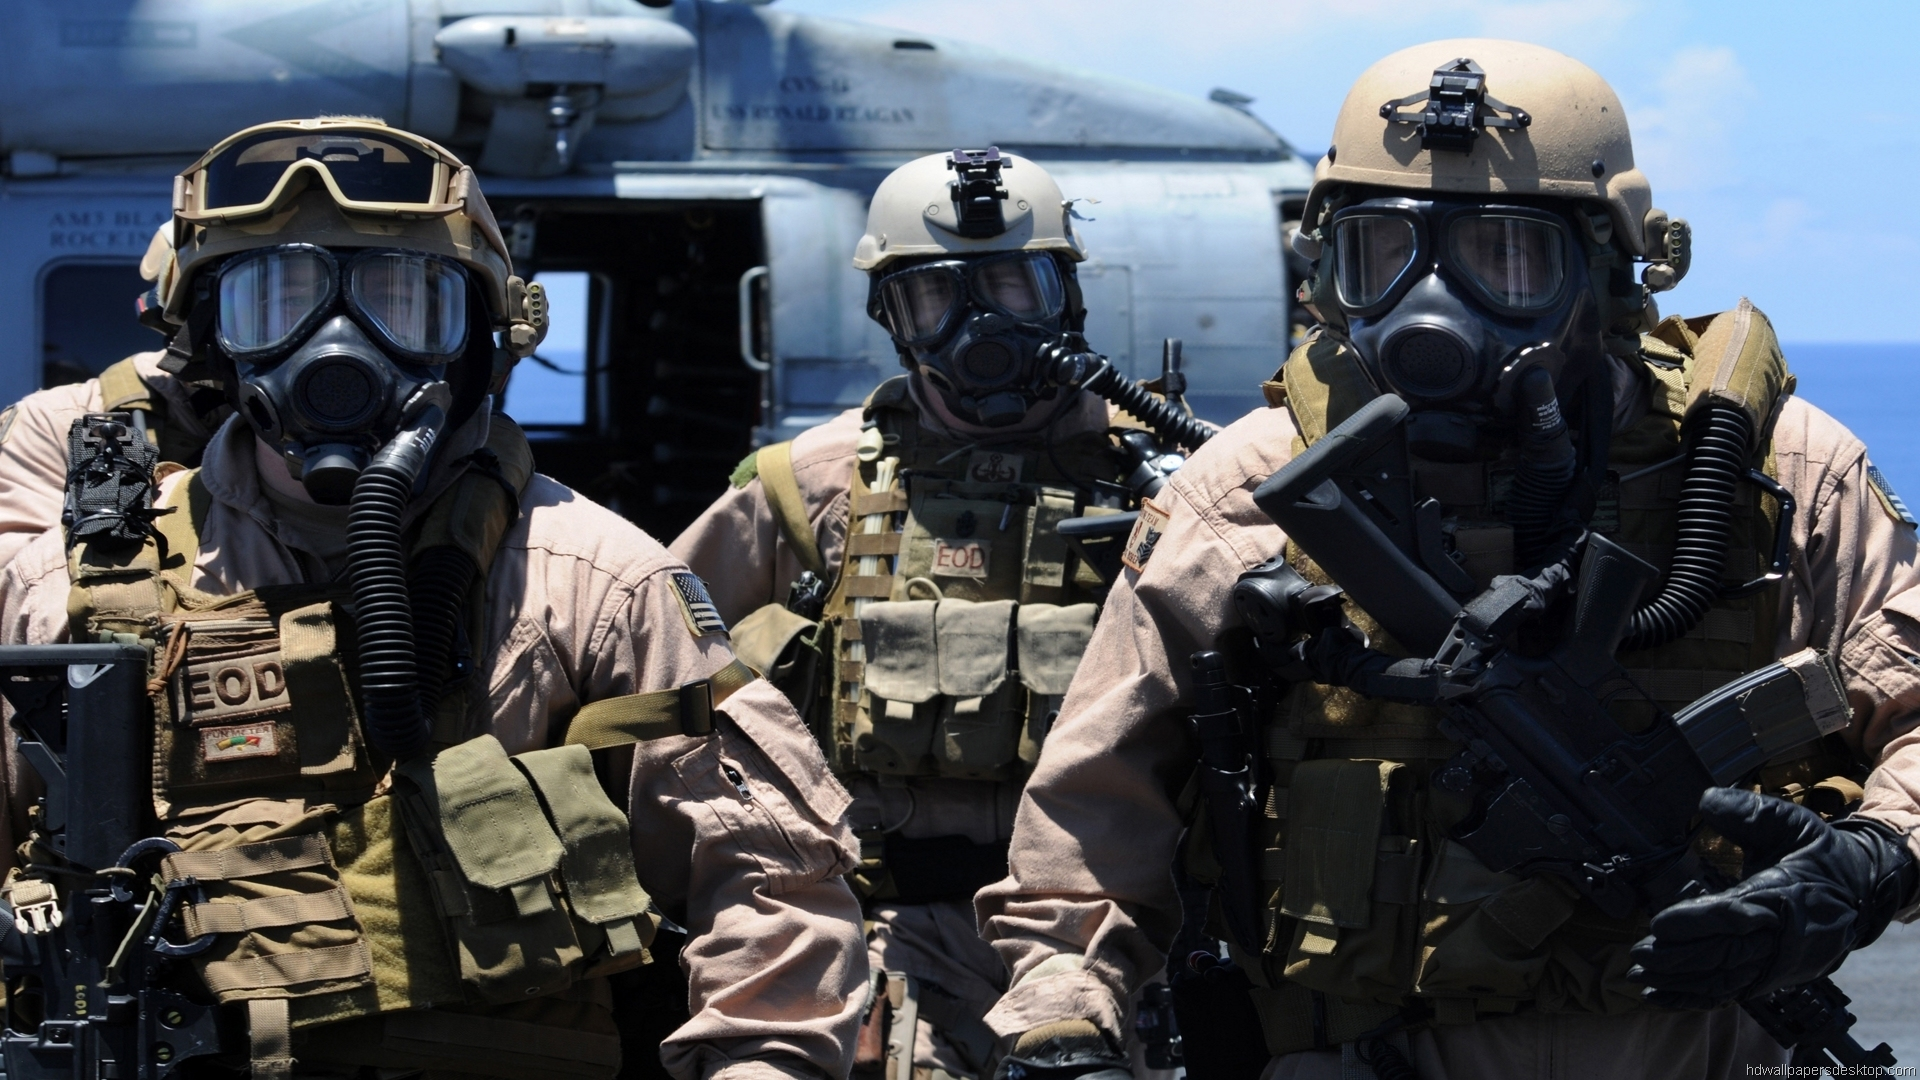 Awesome Military Wallpapers 2015 Best Auto Reviews 1920x1080